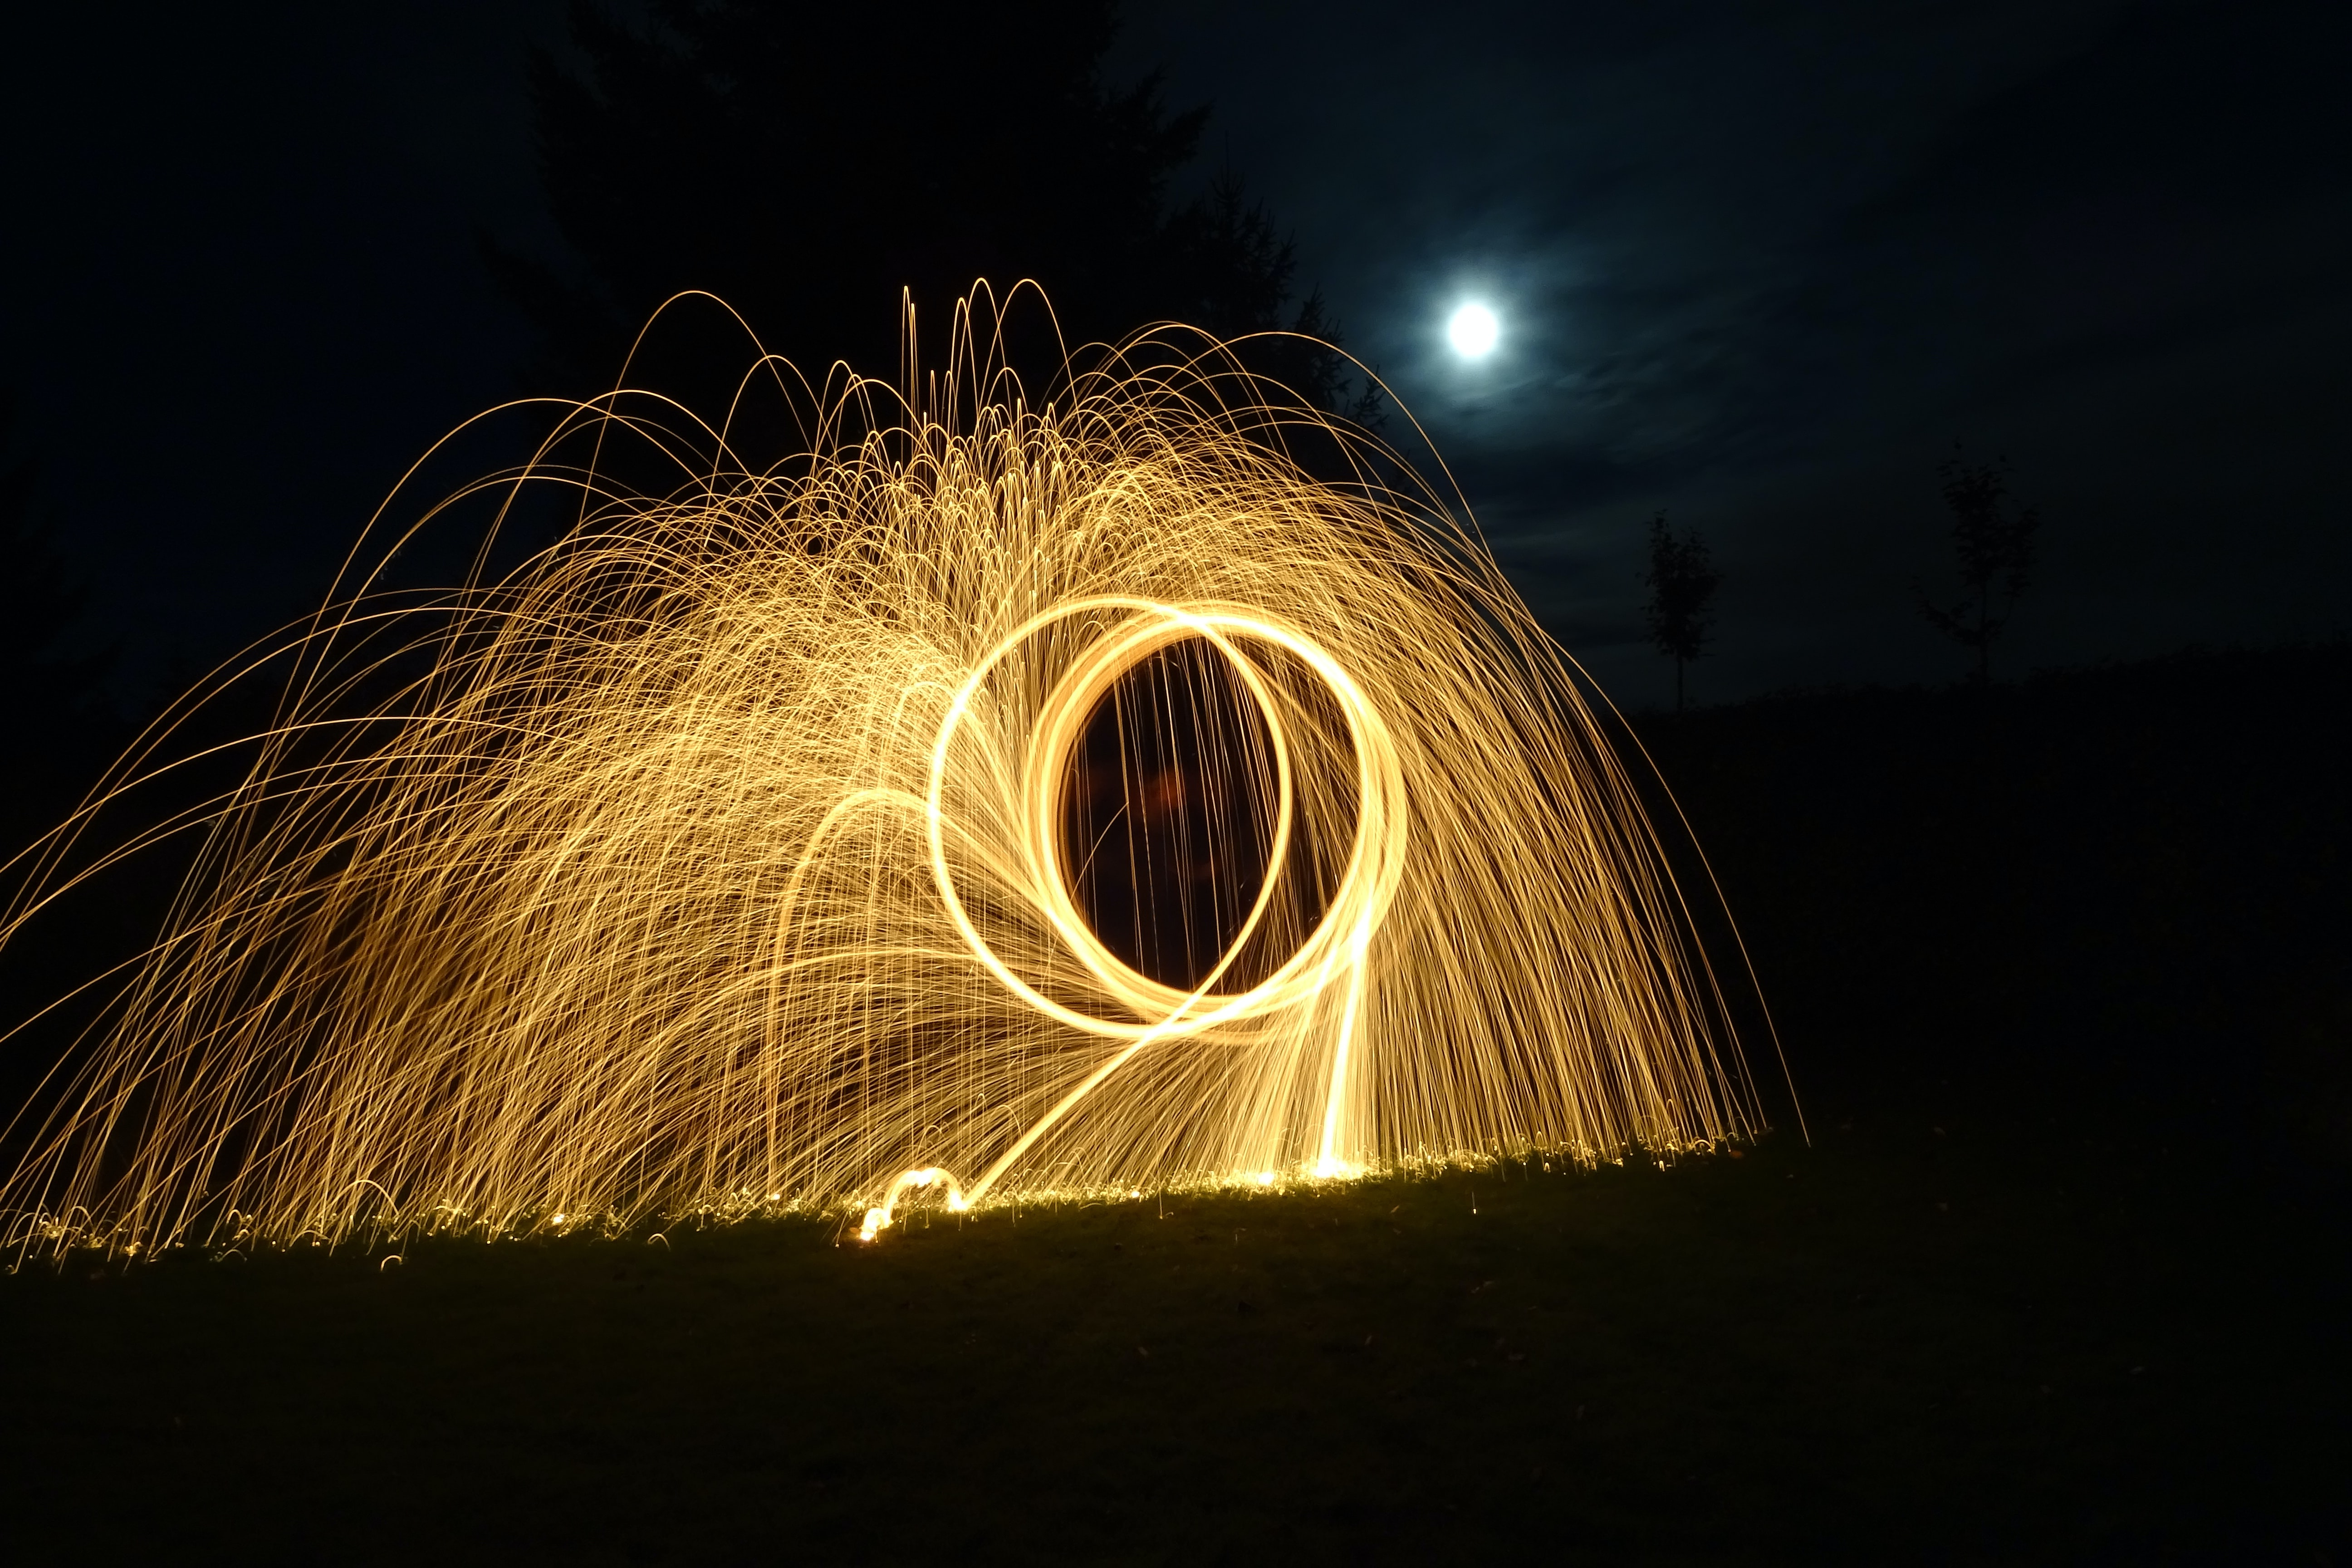 Light trails caused from long exposure simulating a hoop shape and fireworks in a dark moonlit night